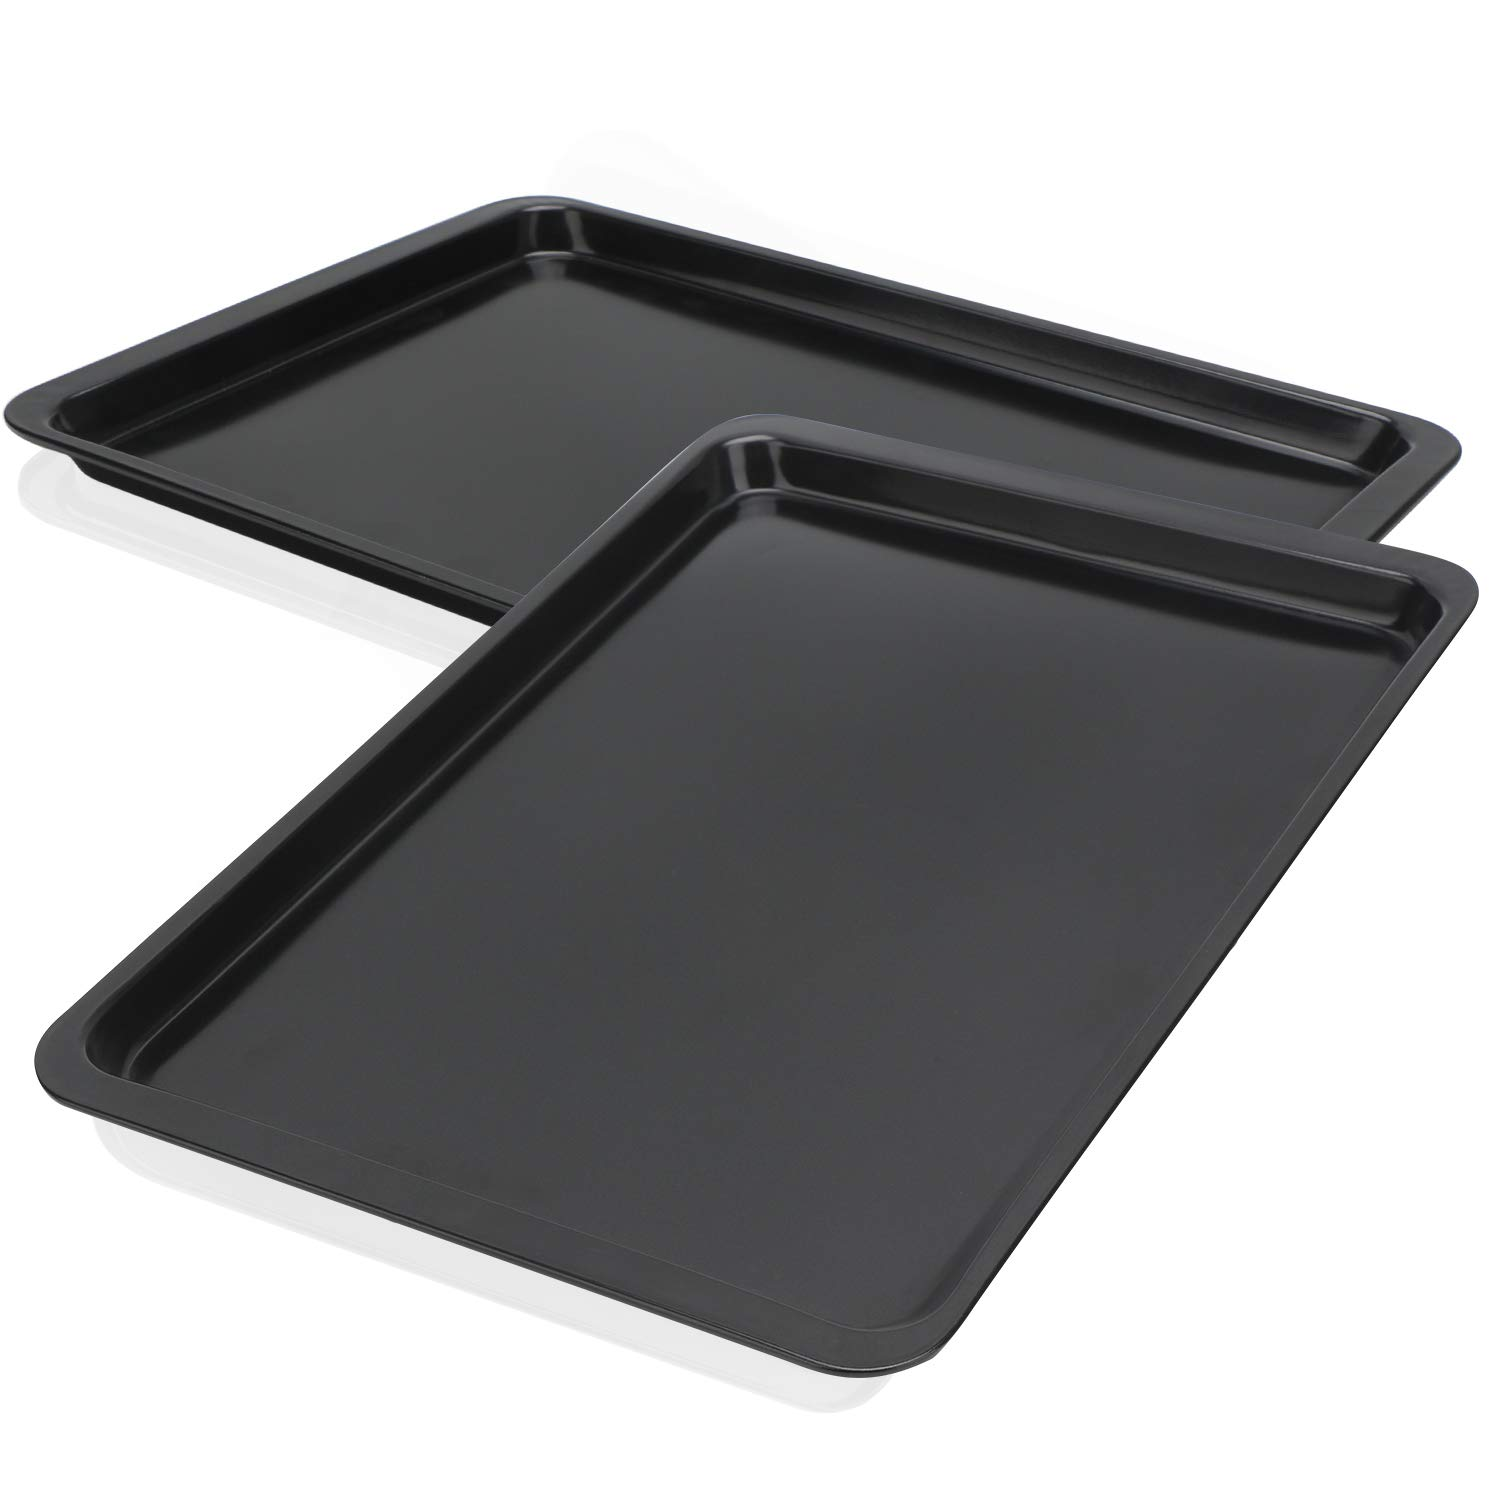 Baking Sheet 14 Inch, Beasea 2 Pack Nonstick Carbon Steel Cookie Sheet Pan Oven Baking Pans Baking Tray Rimmed Baking Pan - Black